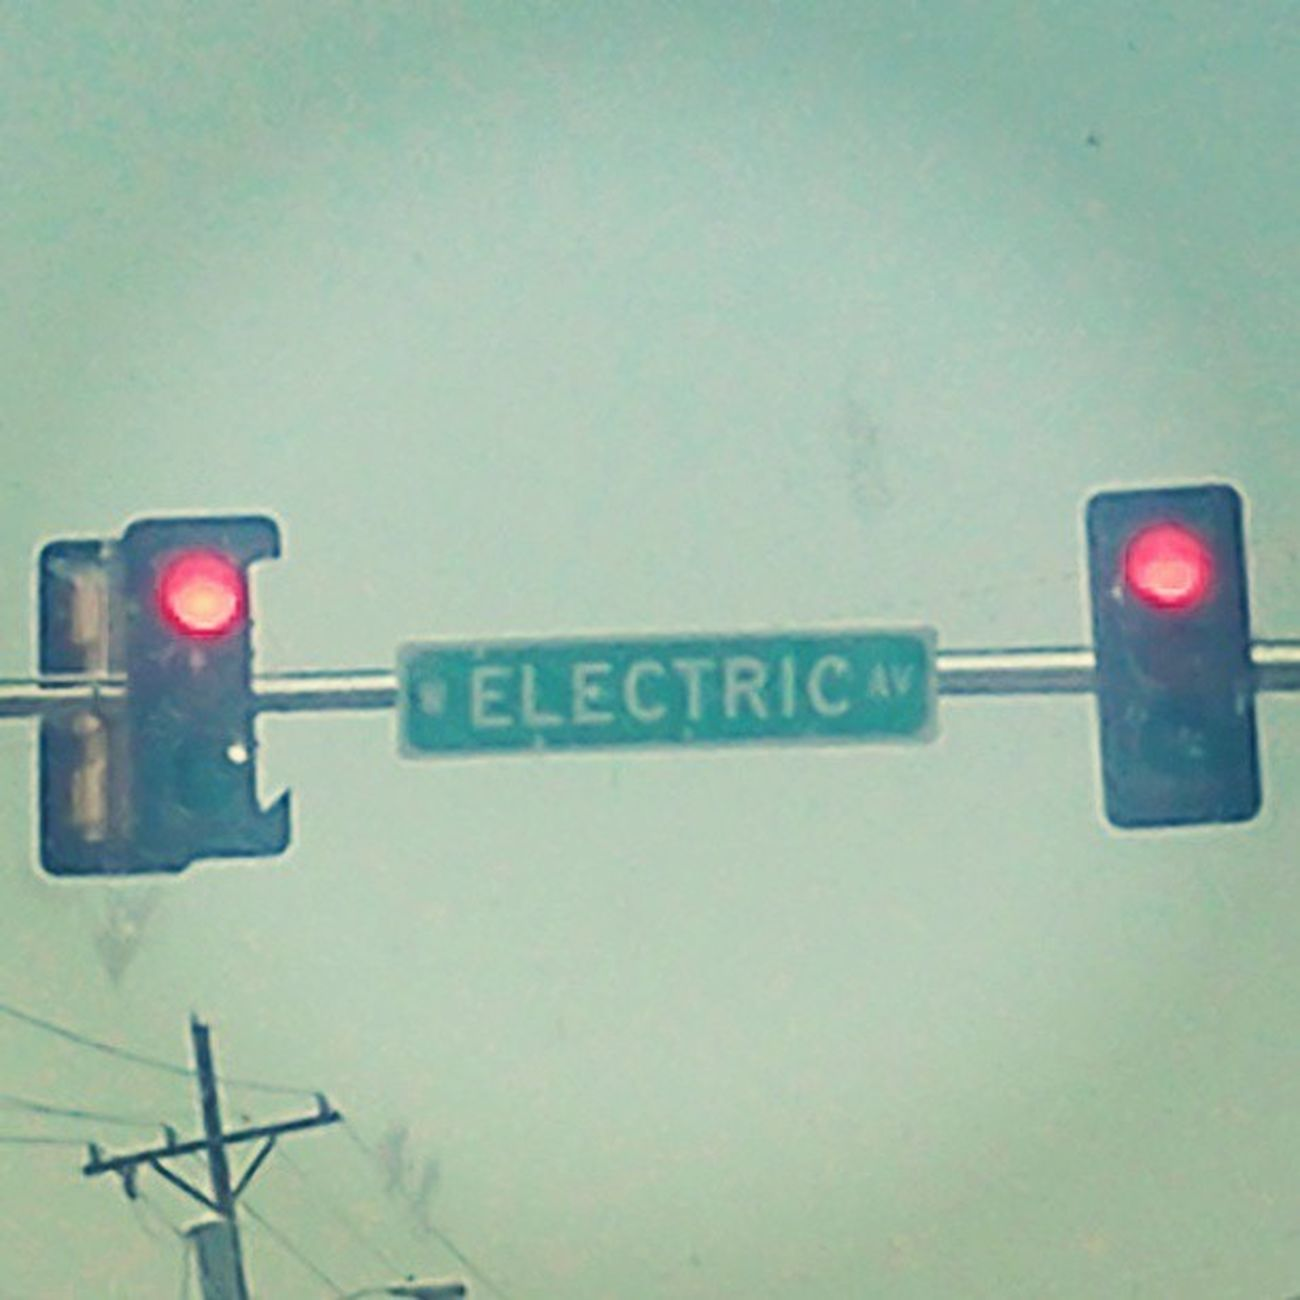 W Electric Avenue. This makes my day! c: Pineappleexpress Oklahoma Mcalester Electricavenue radical